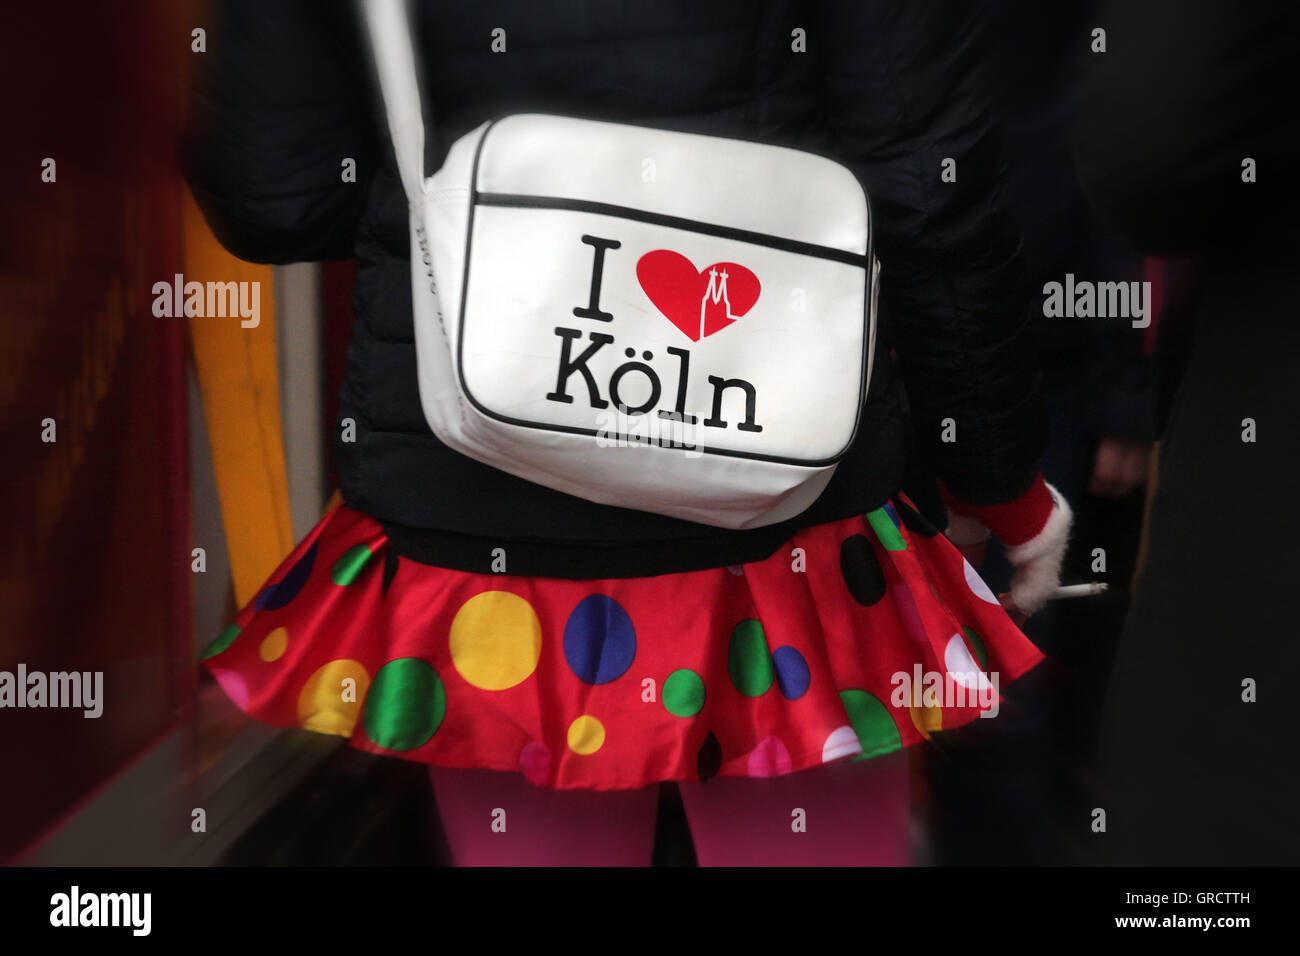 Woman In Miniskirt Carrying A Bag I Love Cologne During Weiberfastnacht - Stock Image